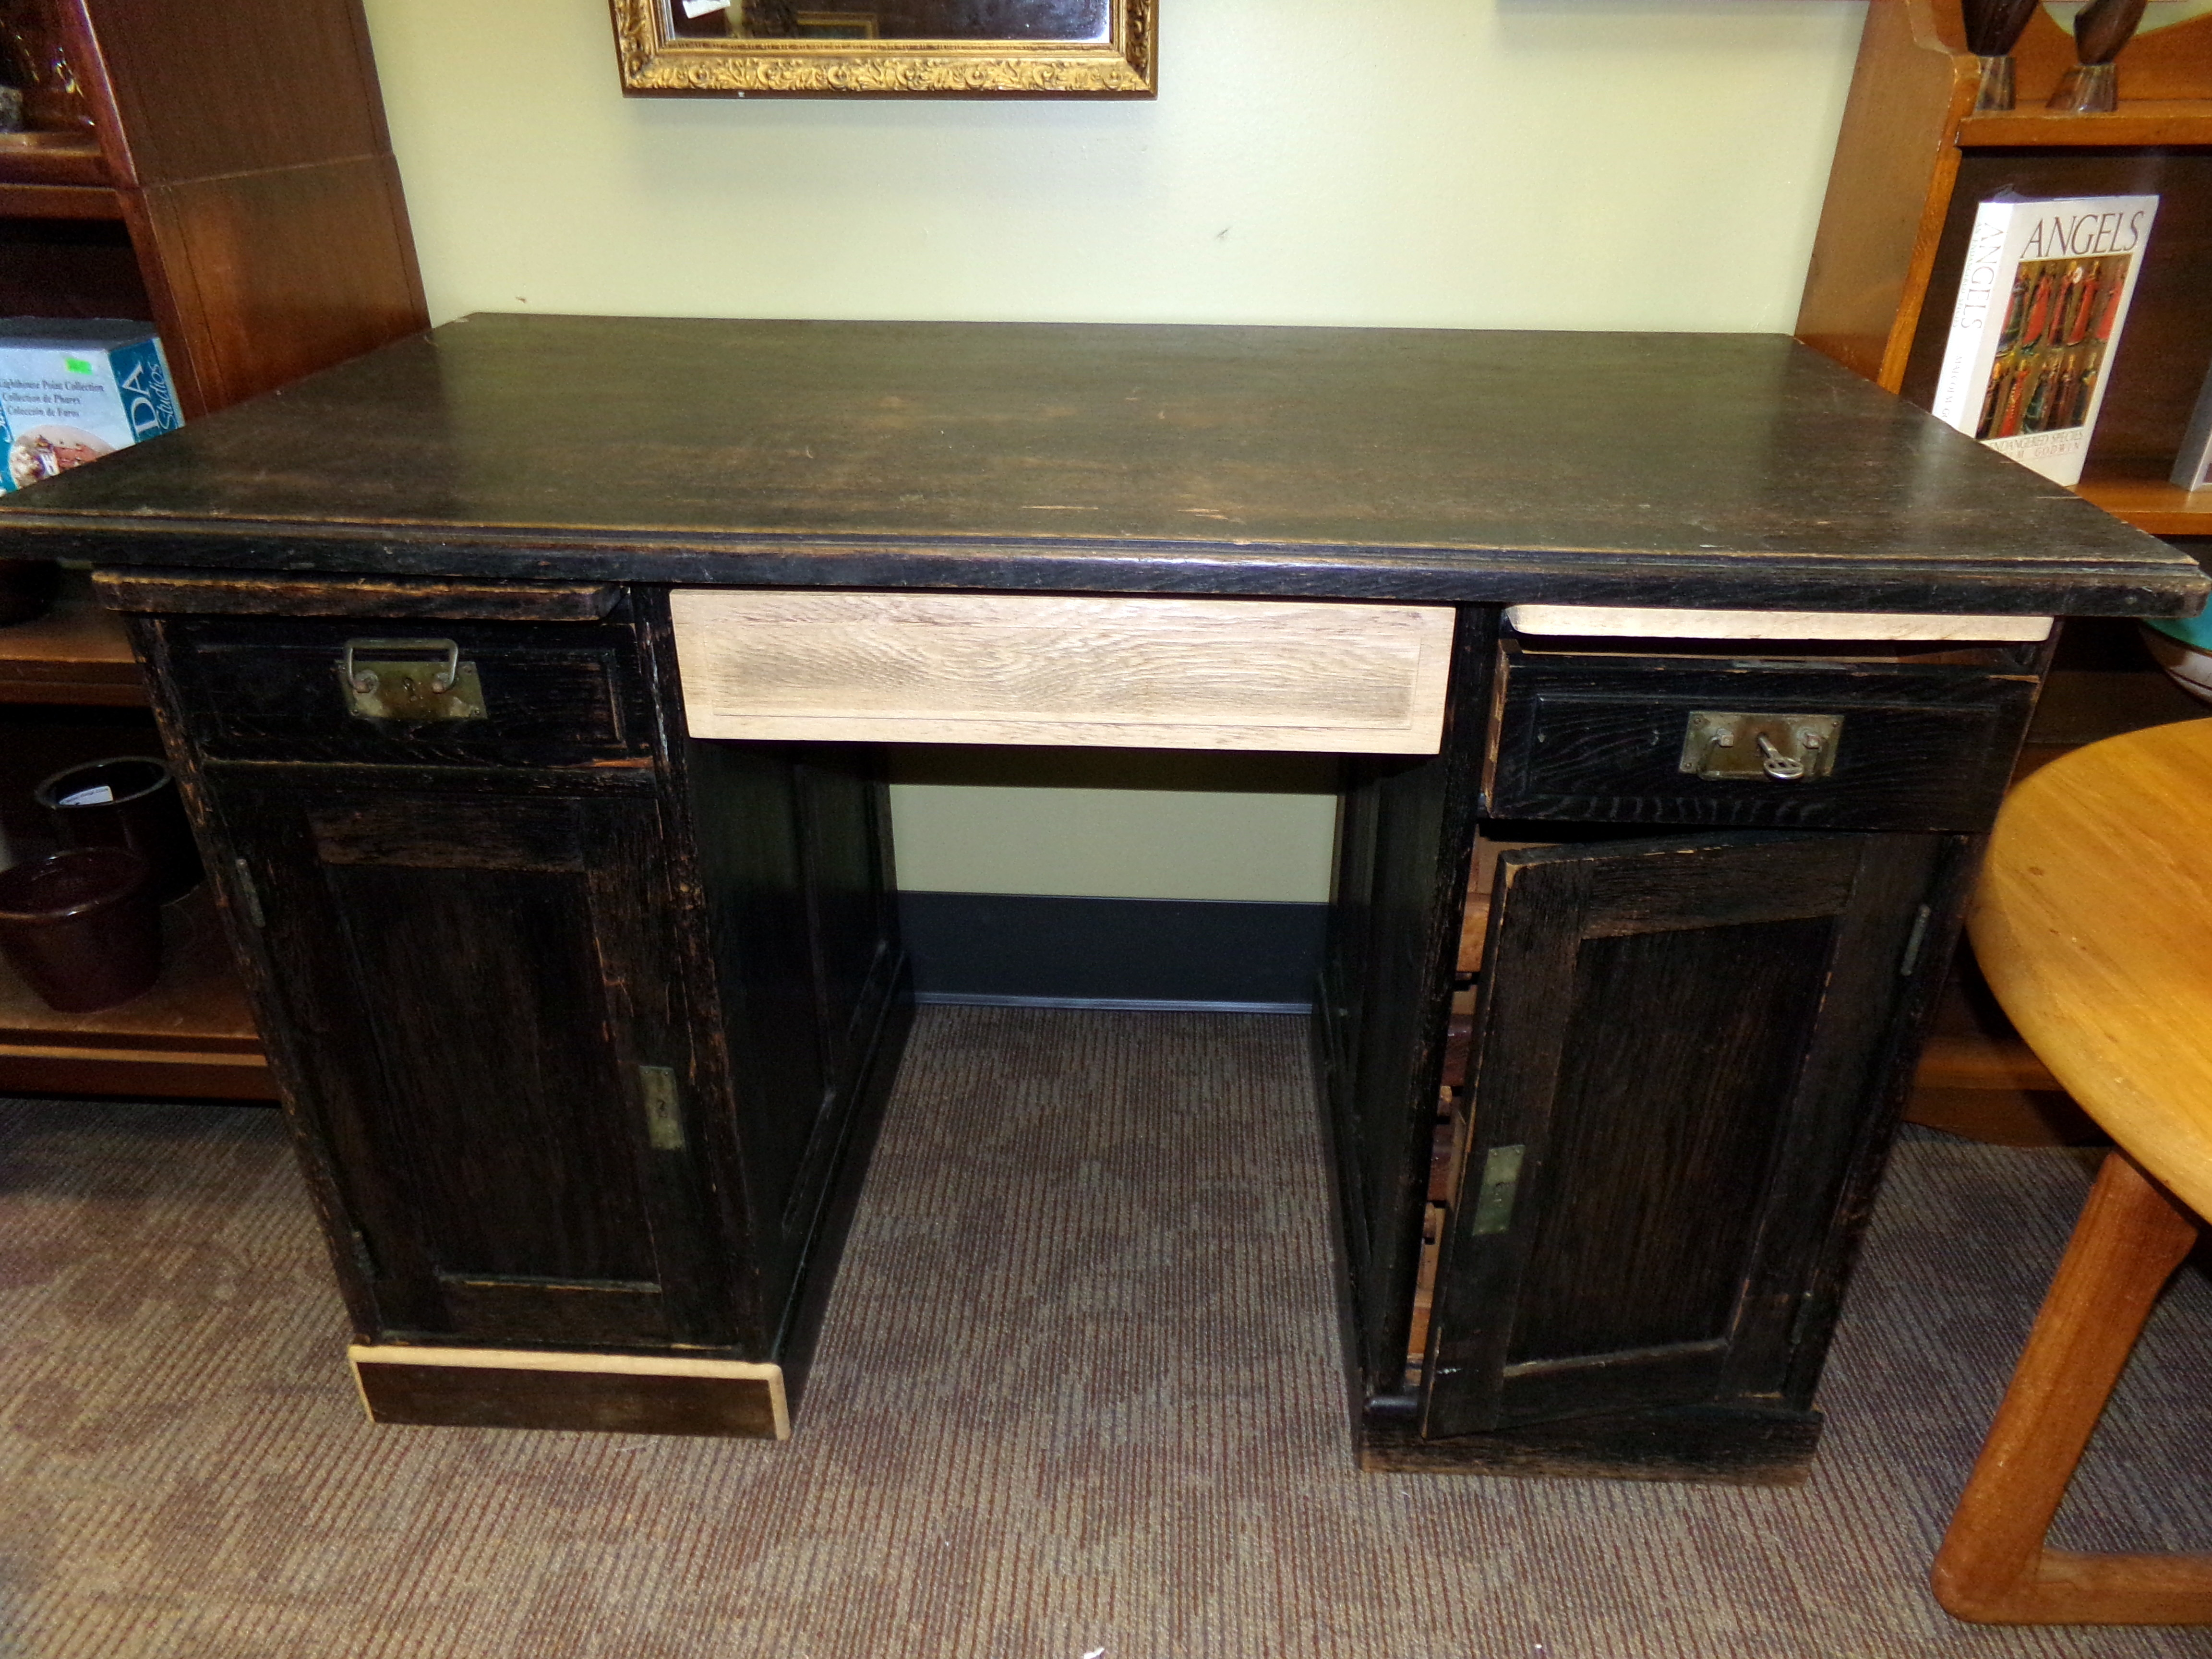 Antique C 1880 S Mission Style Oak Desk With Pull Out Side Shelves Curiosity Consignment